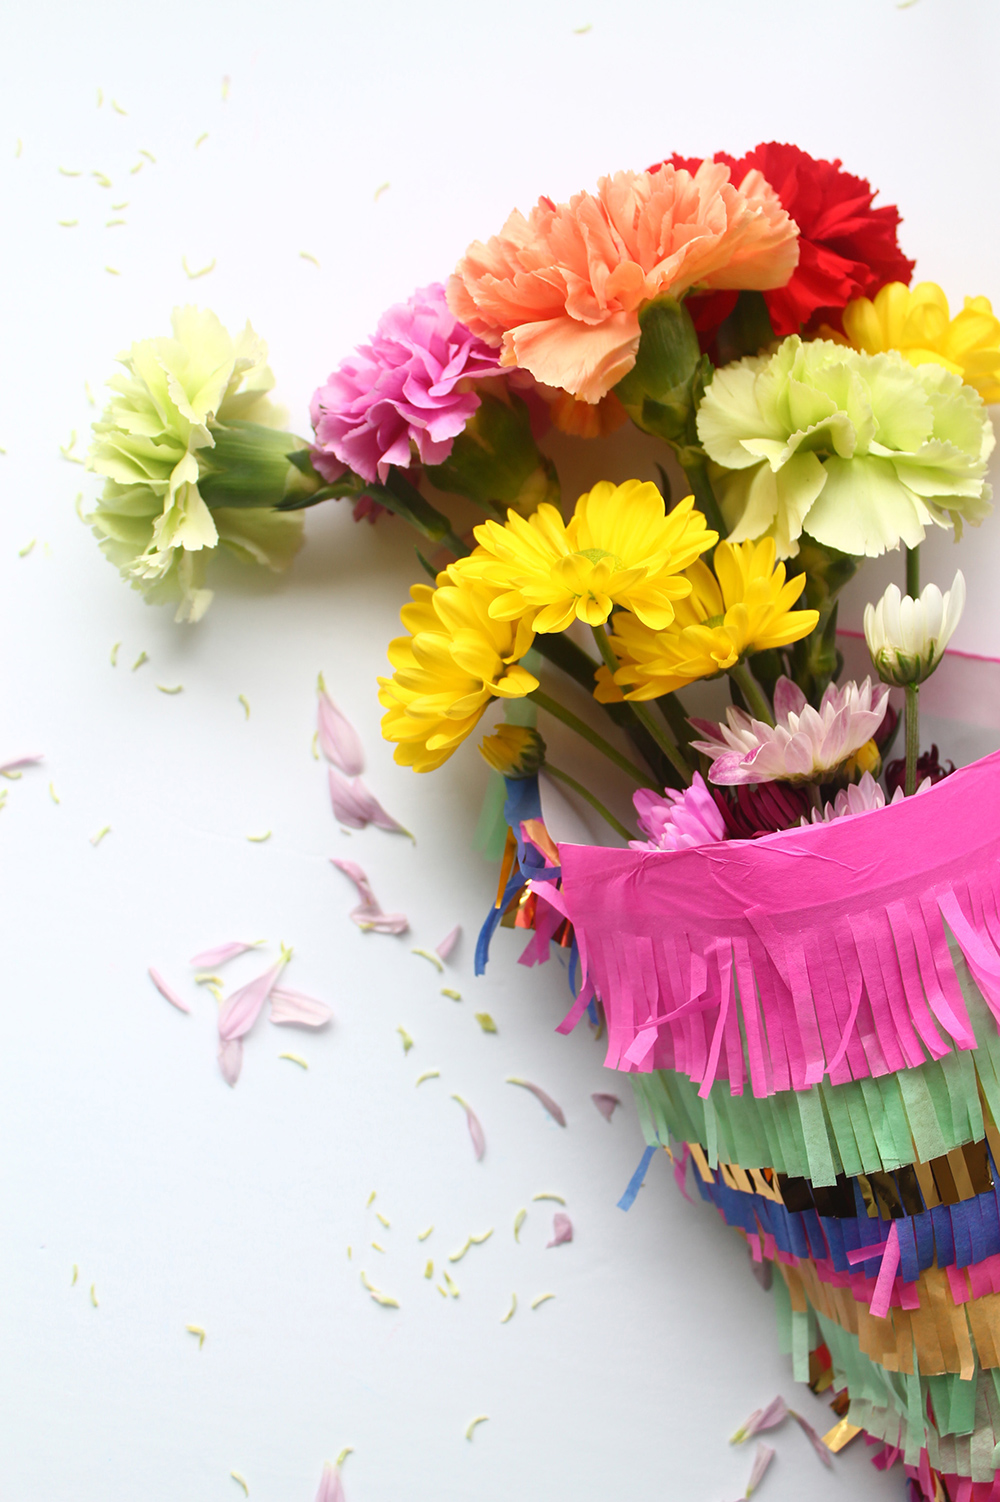 Add fringe to a regular piece of paper and wrap up your flowers! A super quick and easy DIY for cinco do mayo, mother's day, or just because | Squirrelly Minds